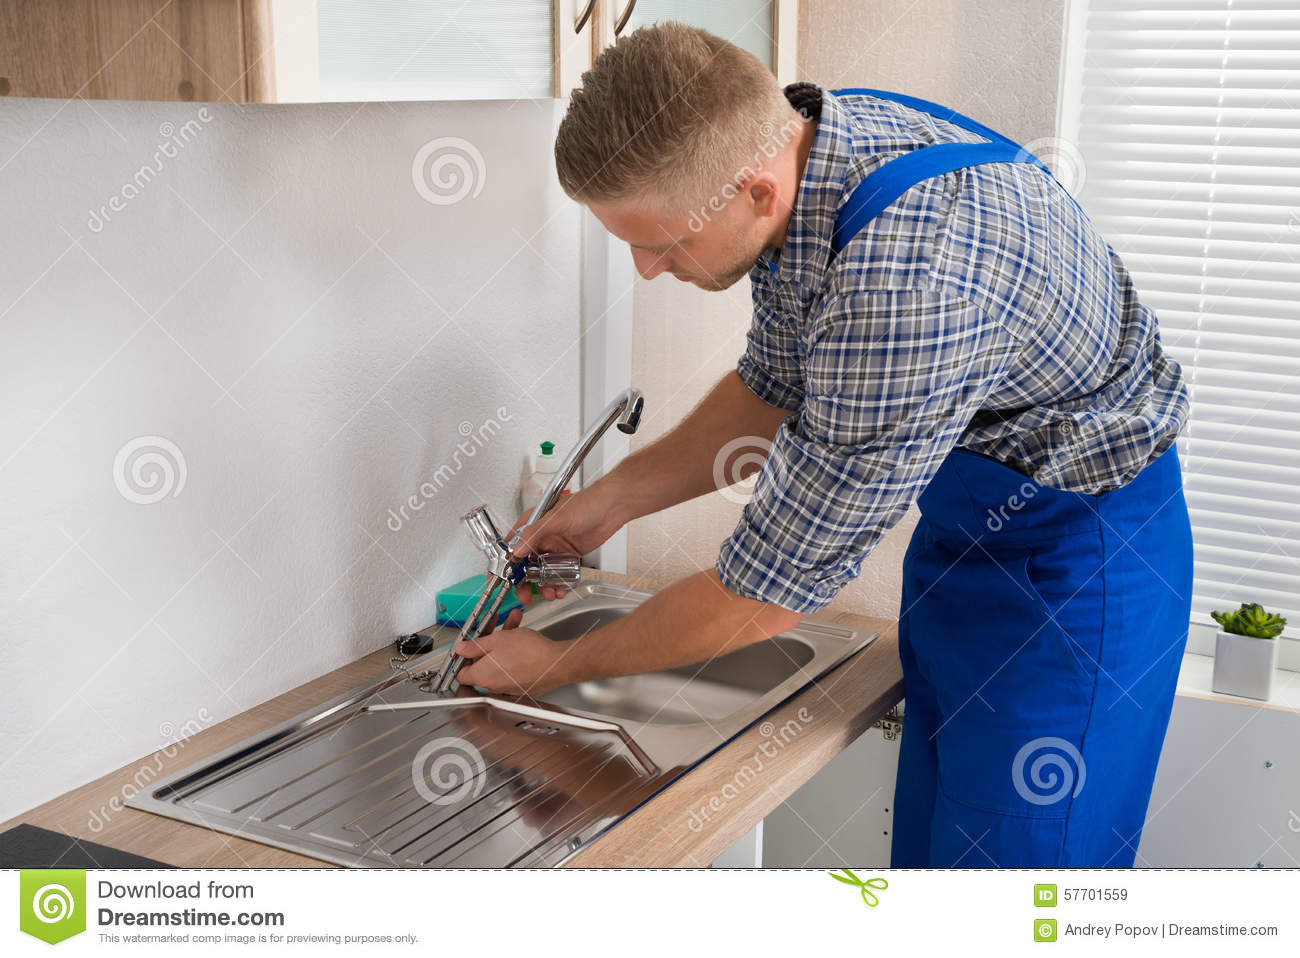 Plumber Fixing Faucet In Kitchen Sink Stock Image - Image of ...